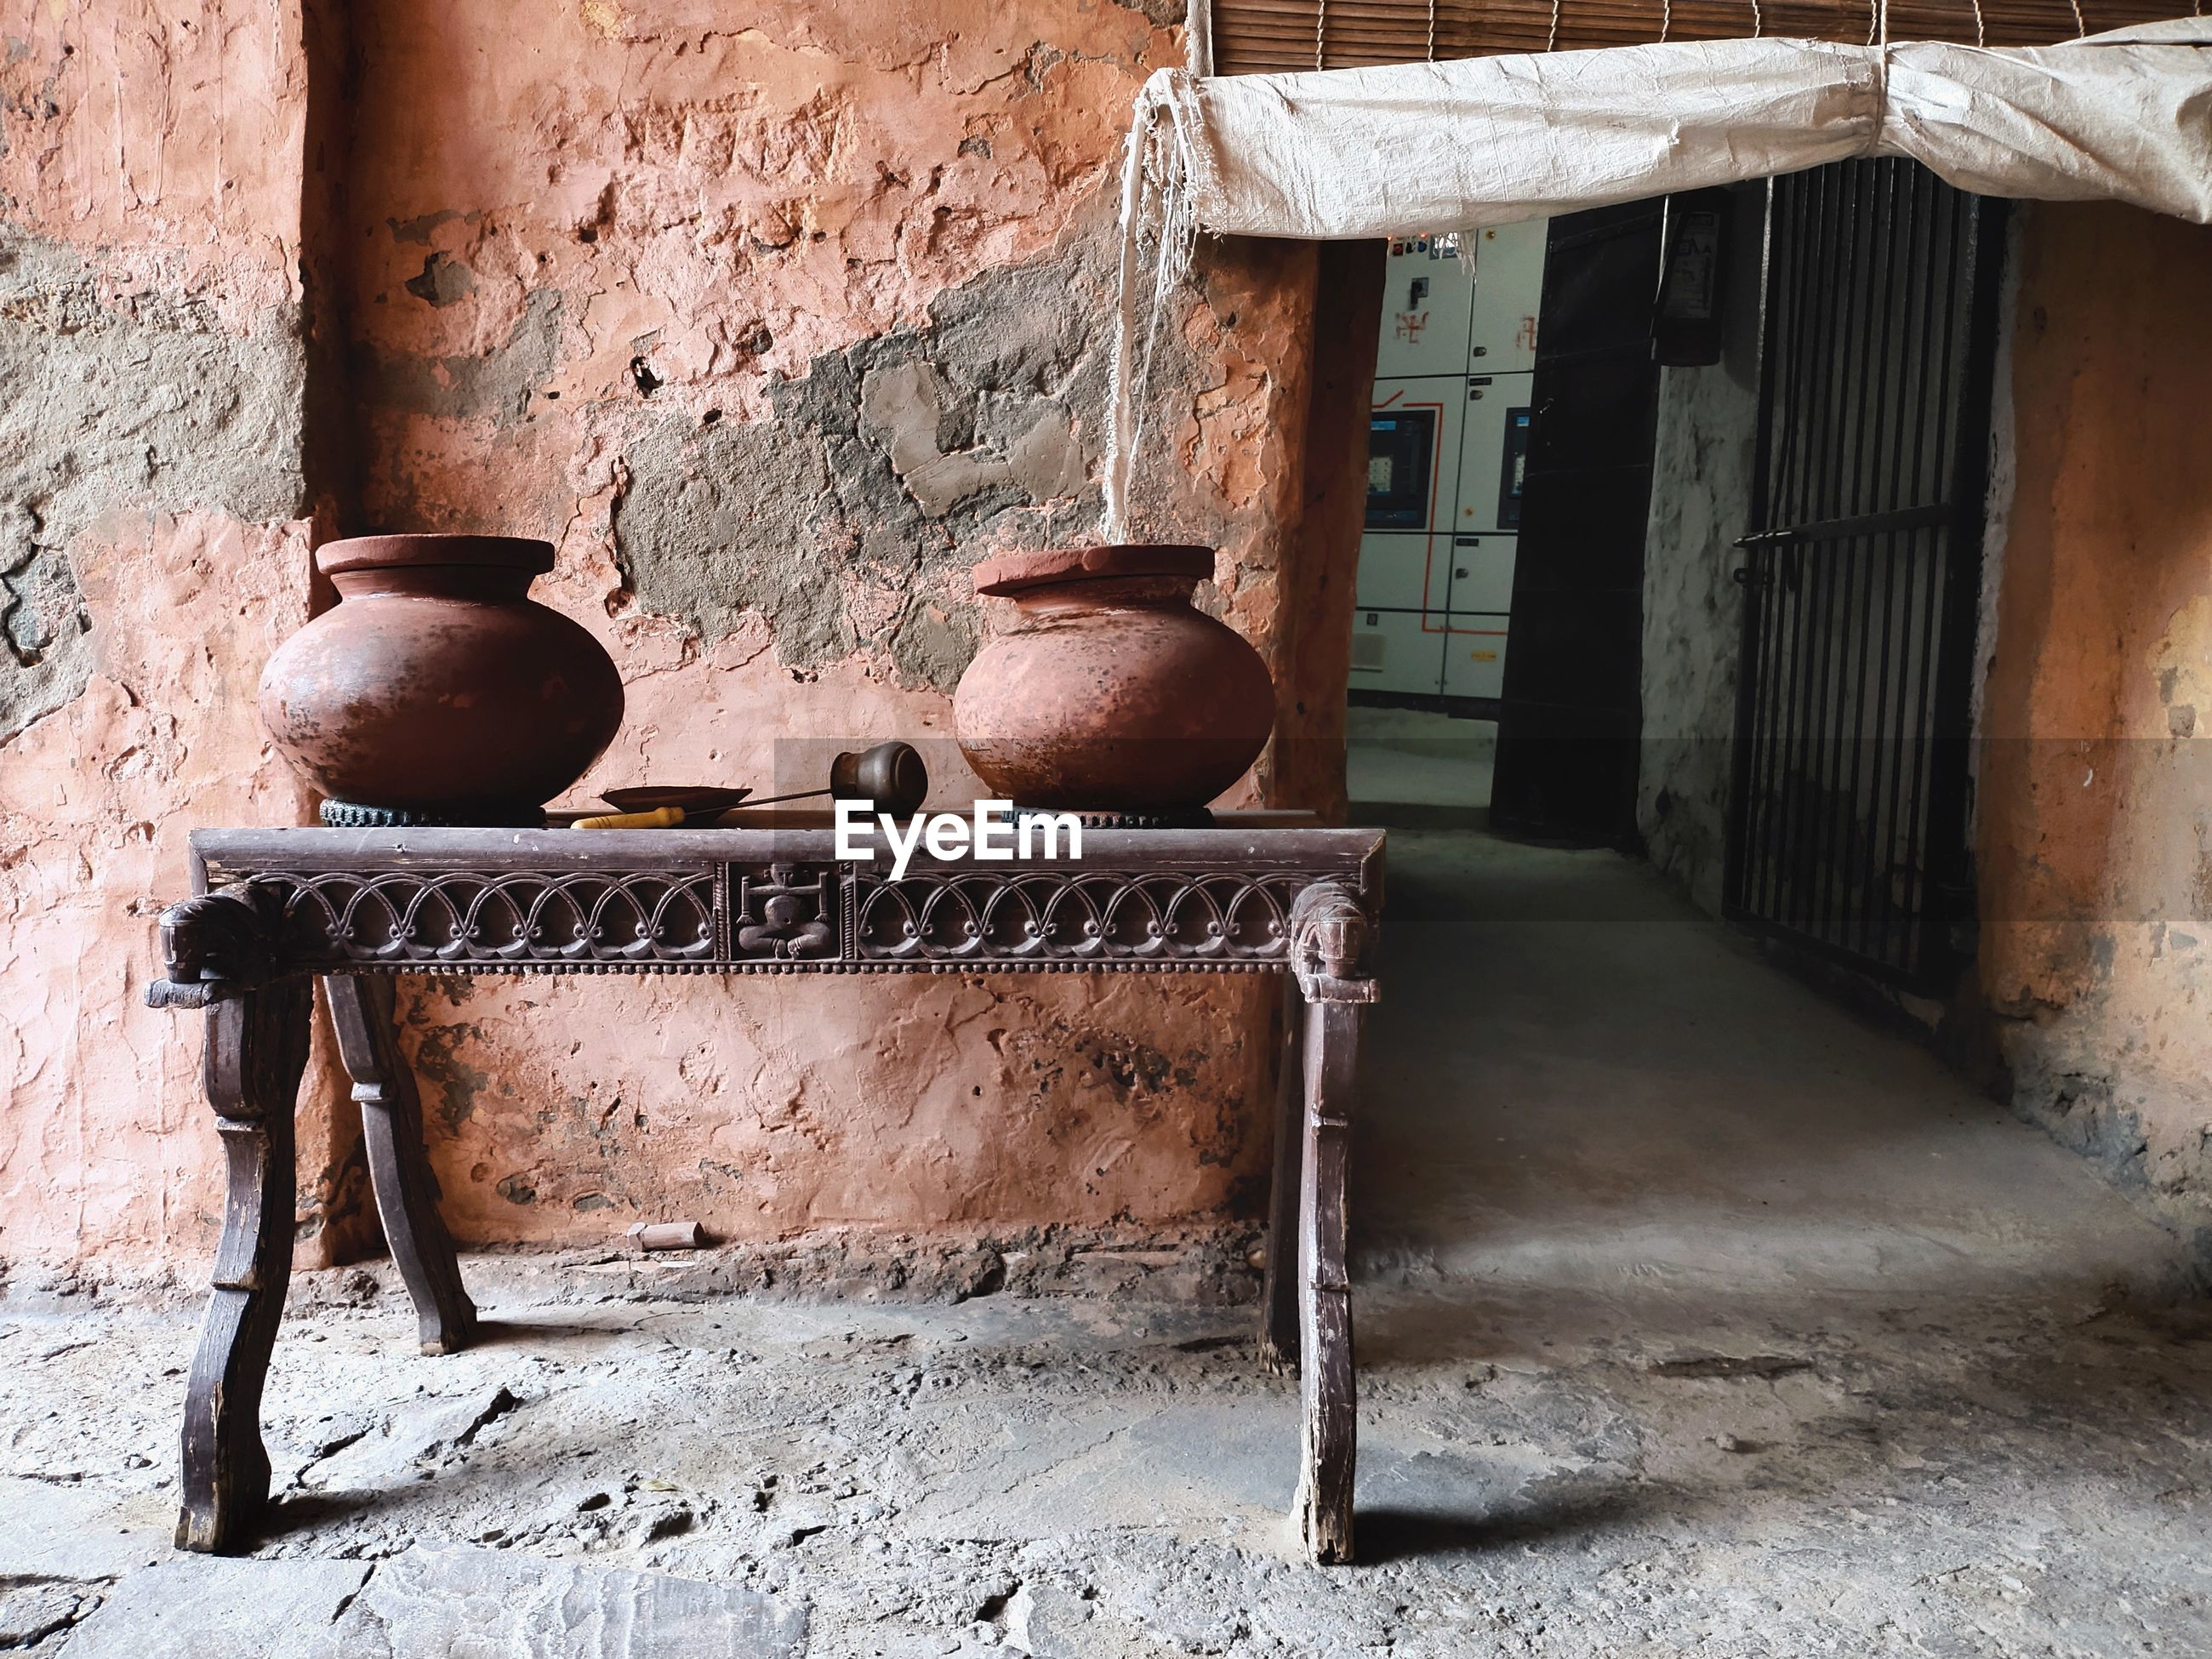 Street journals- earthenware water pots by the old weathered wall